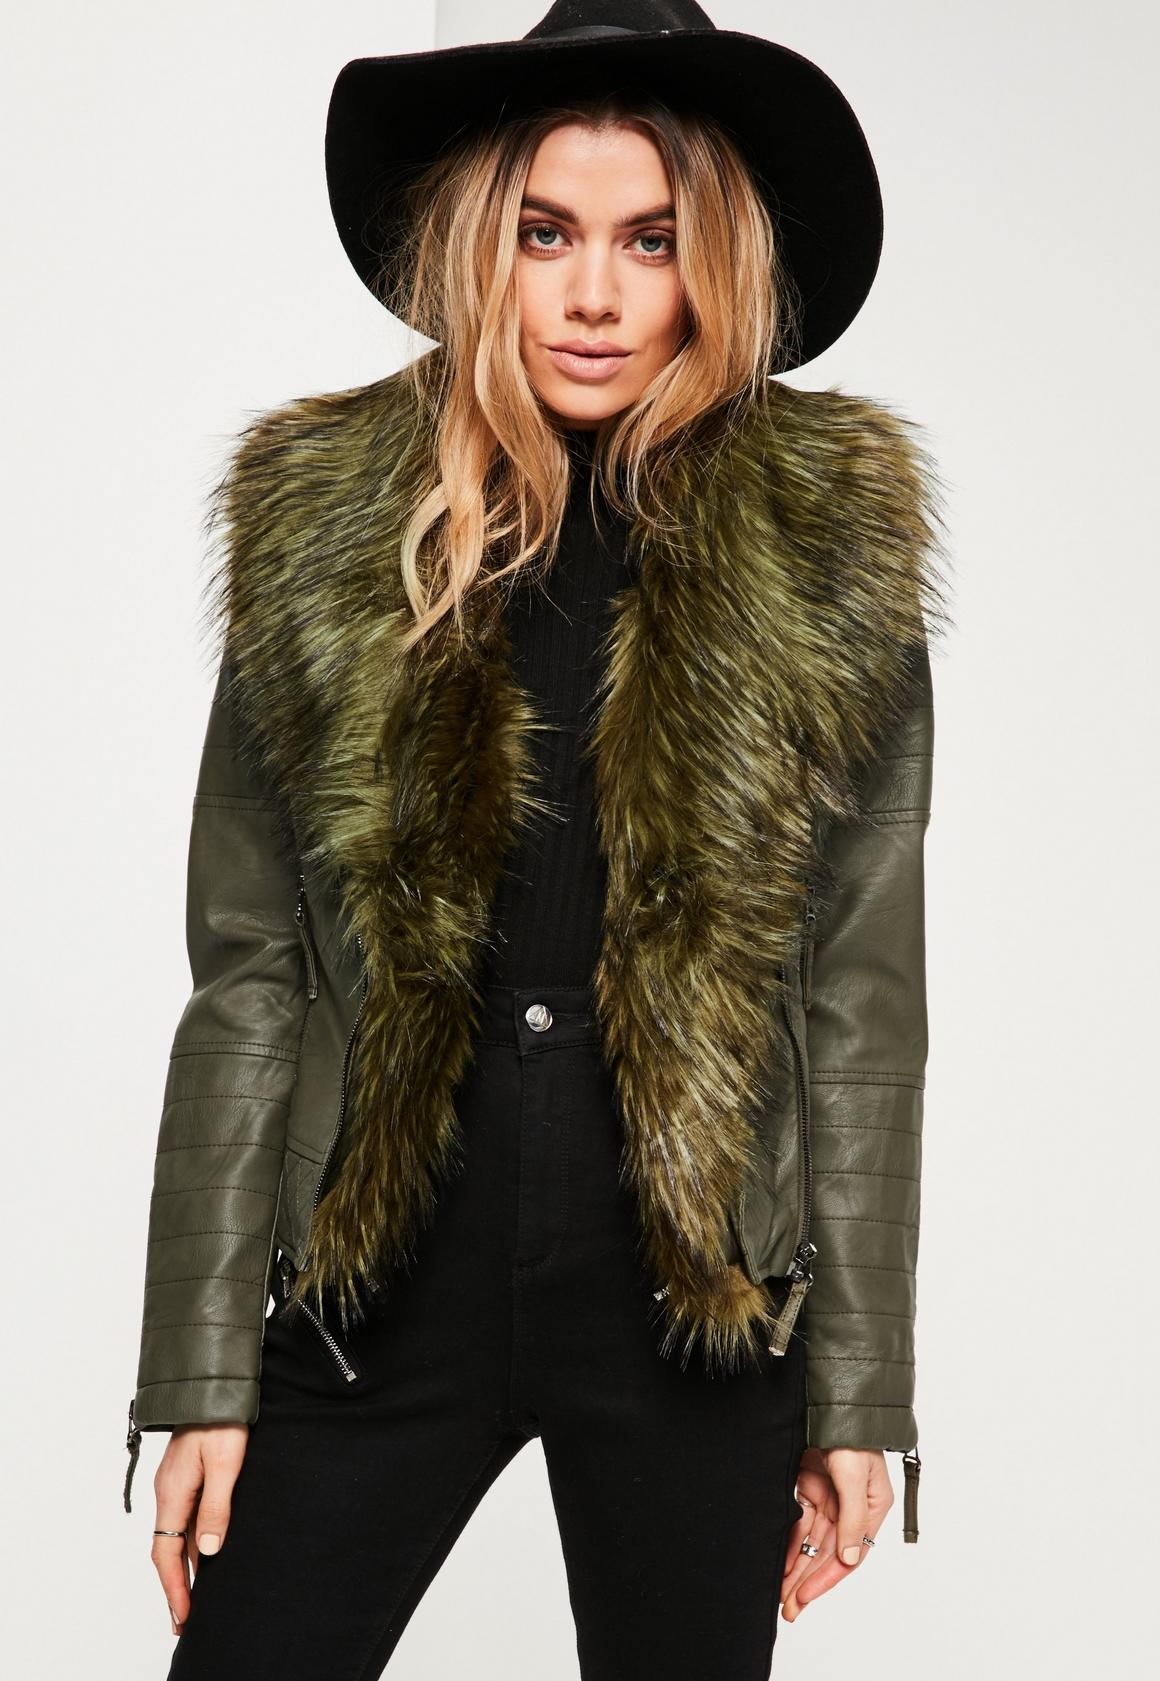 Leather Jacket With Fur Collar | Jackets Review